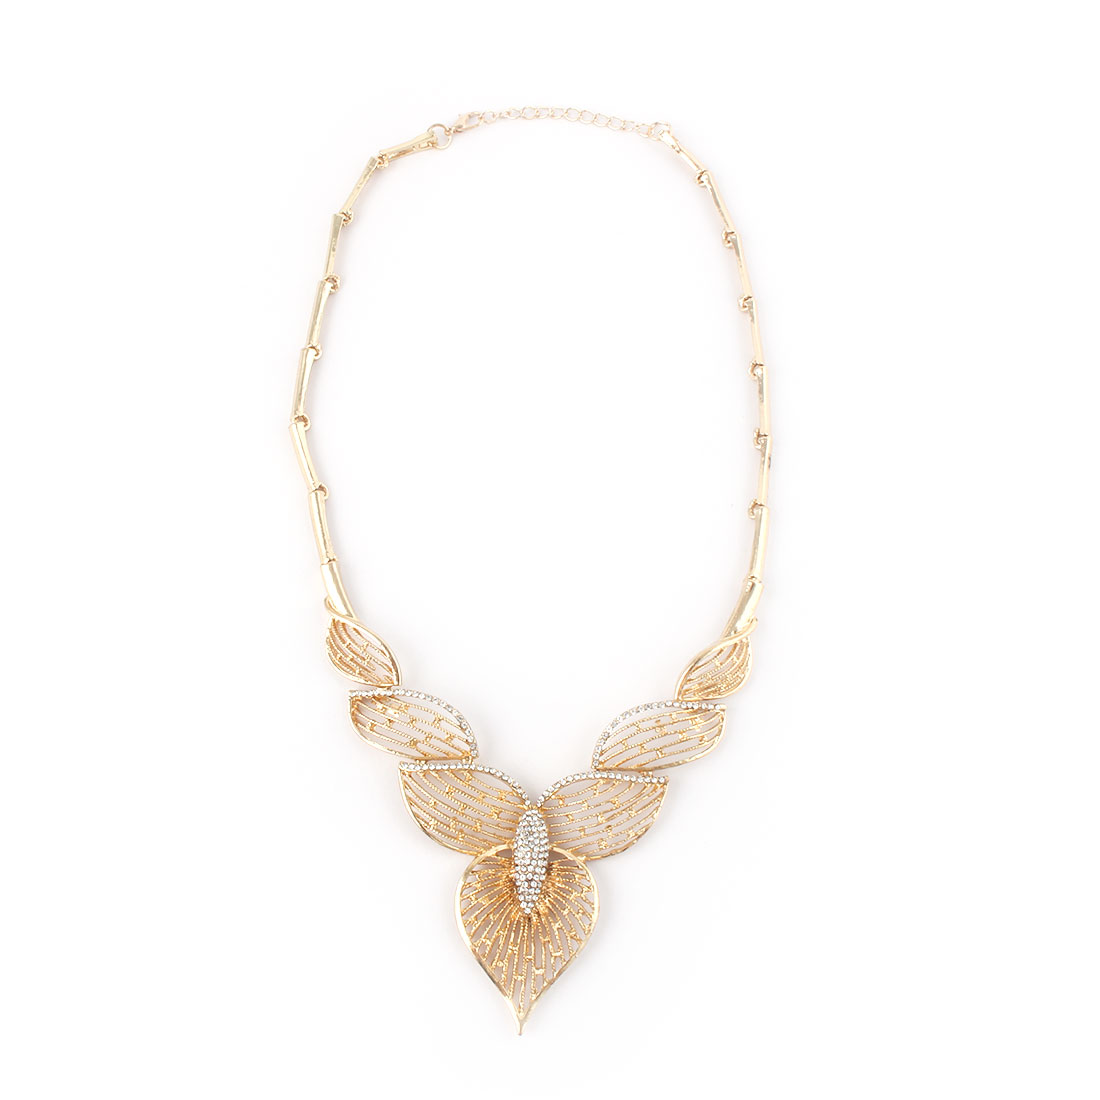 Women Metal Hollow Out Leaf Design Bib Collar Charming Choker Necklace Gold Tone